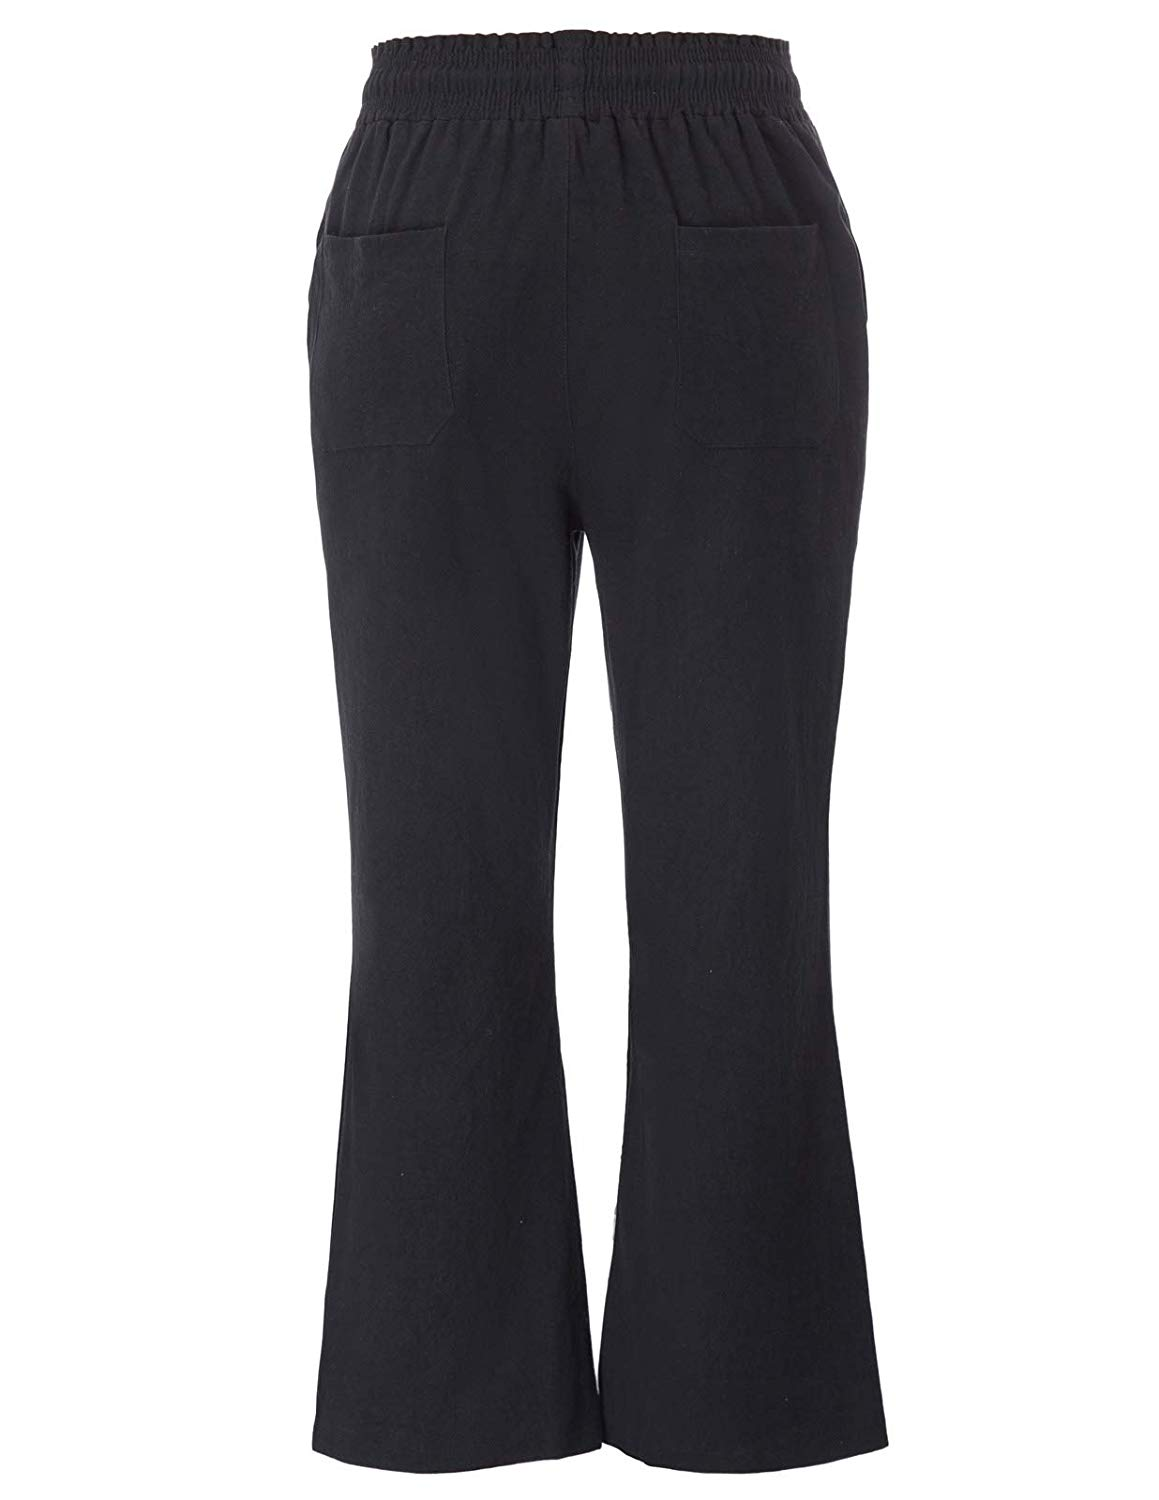 Women s Casual Cropped Pants with Pockets trousers women